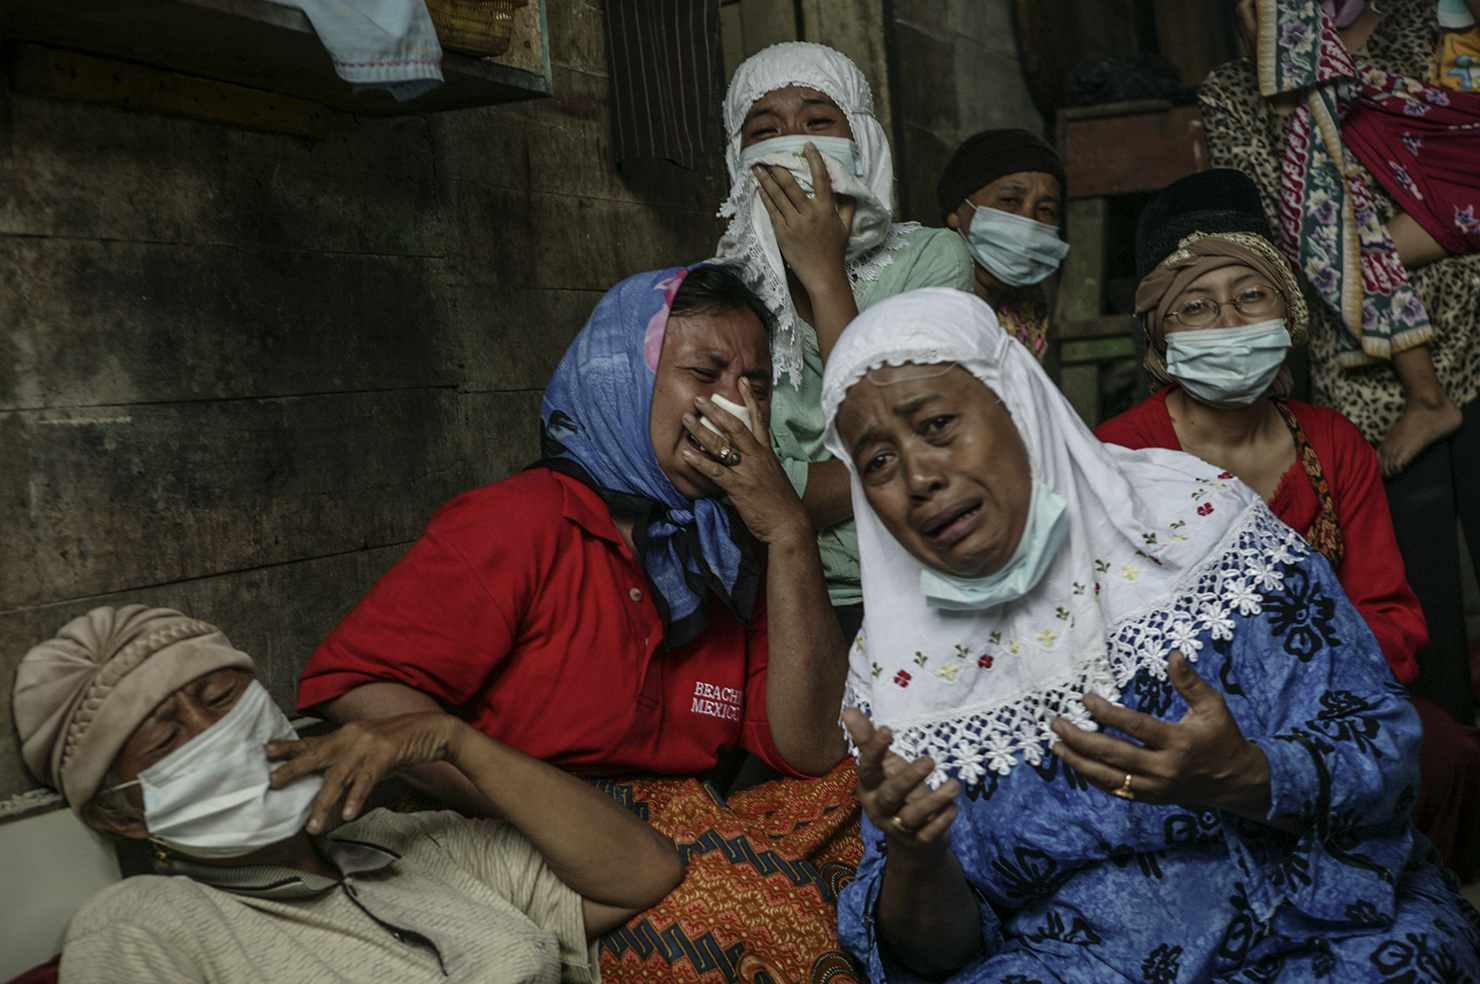 A family grieves as a deceased family member is extracted from the collapsed section of their home.